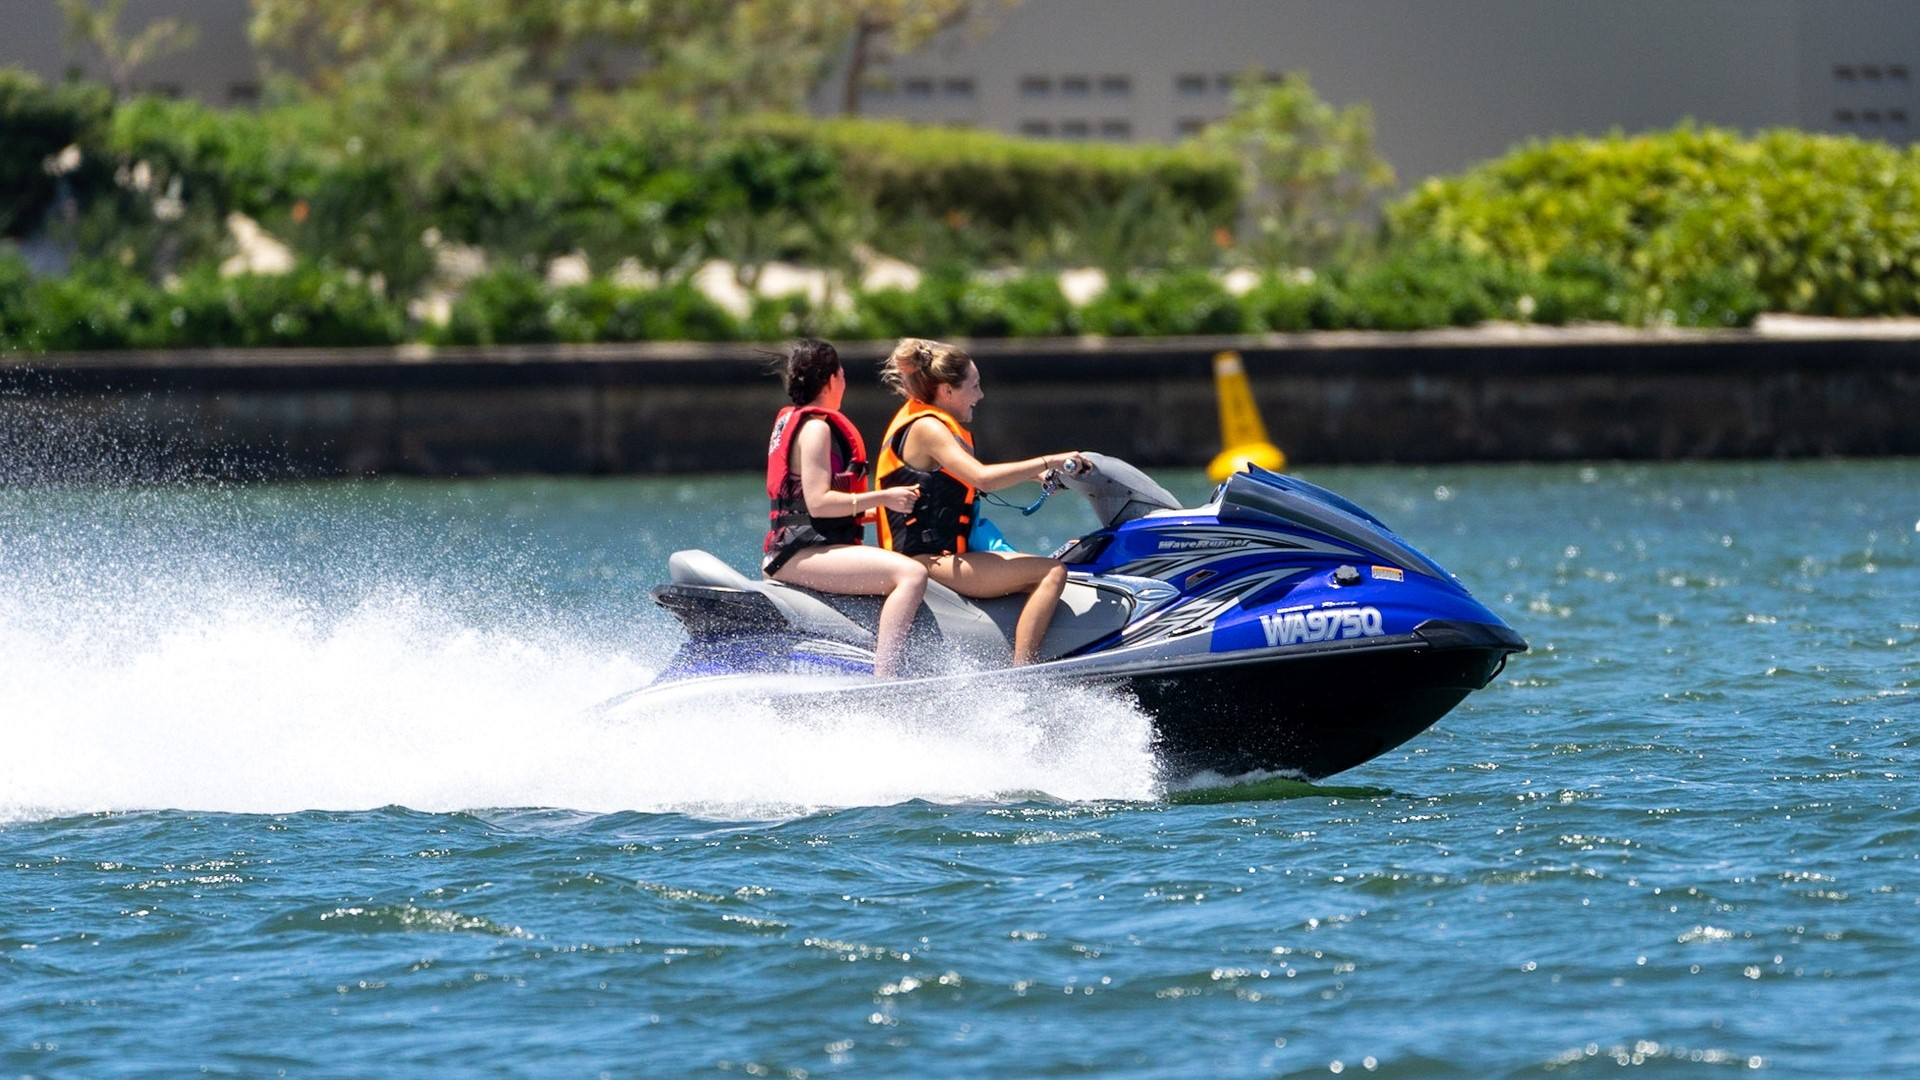 Recreational Watercraft Safety Laws